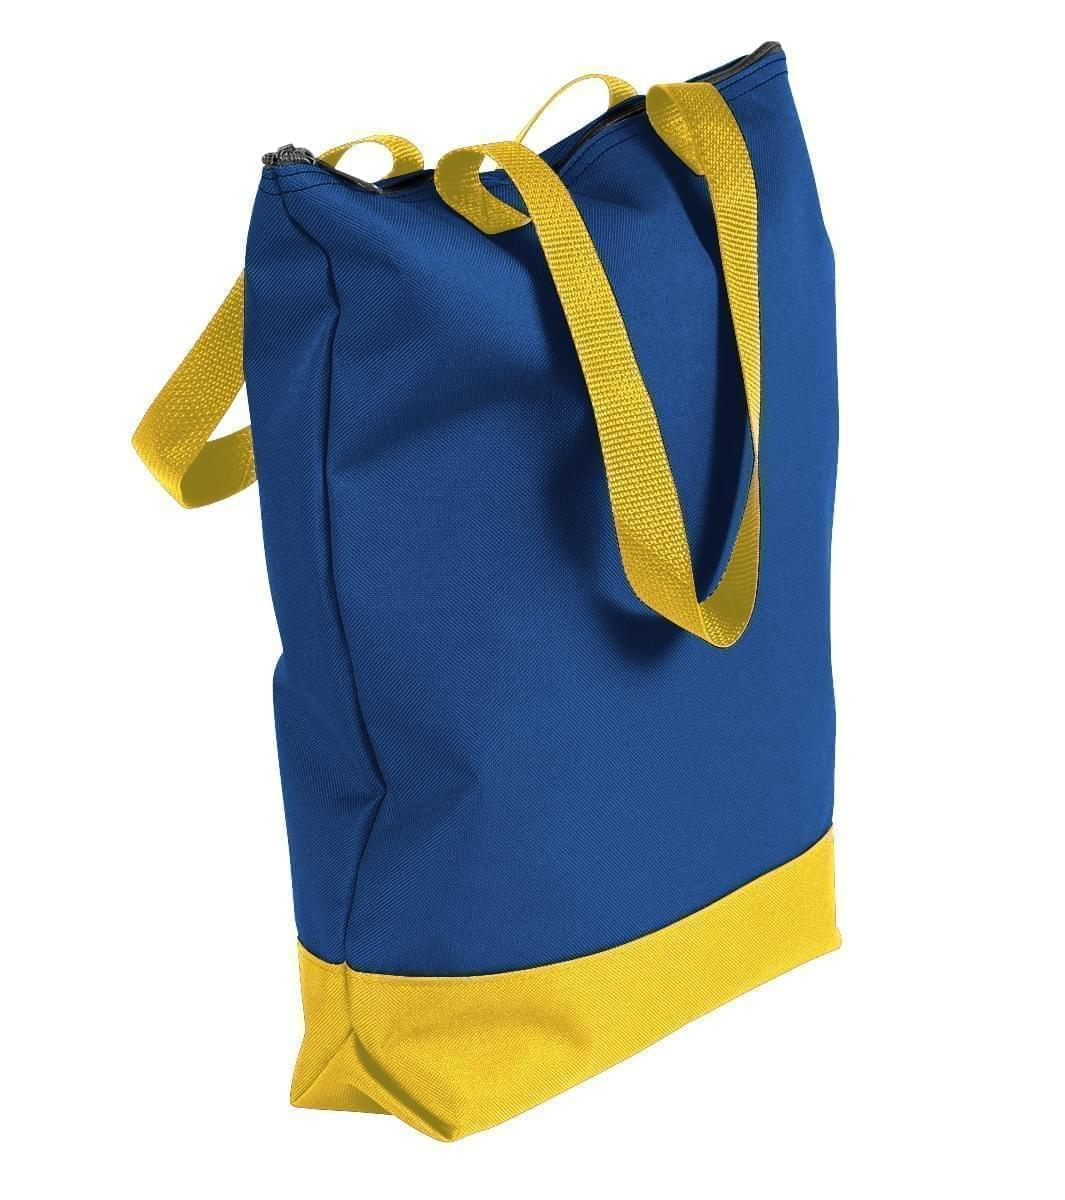 USA Made Canvas Portfolio Tote Bags, Royal Blue-Gold, 1AAMX1UAF5